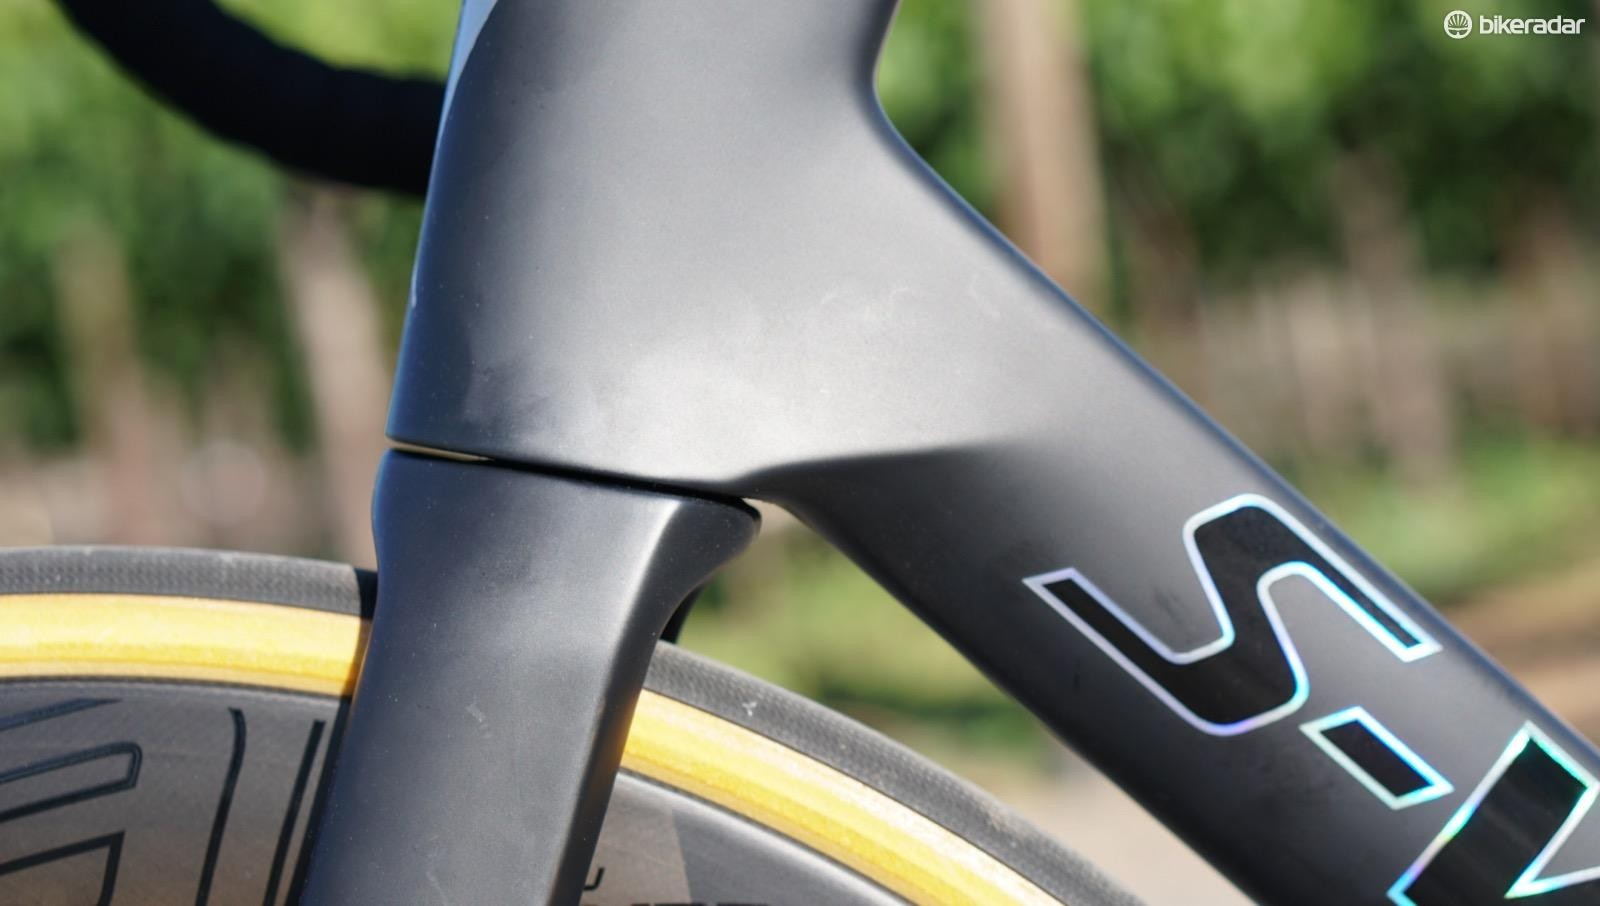 It is easy to believe the new Venge is lighter than the ViAS by looking at it (and lifting it), but for the new frame being faster, for now we'll have to take Specialized's word for it